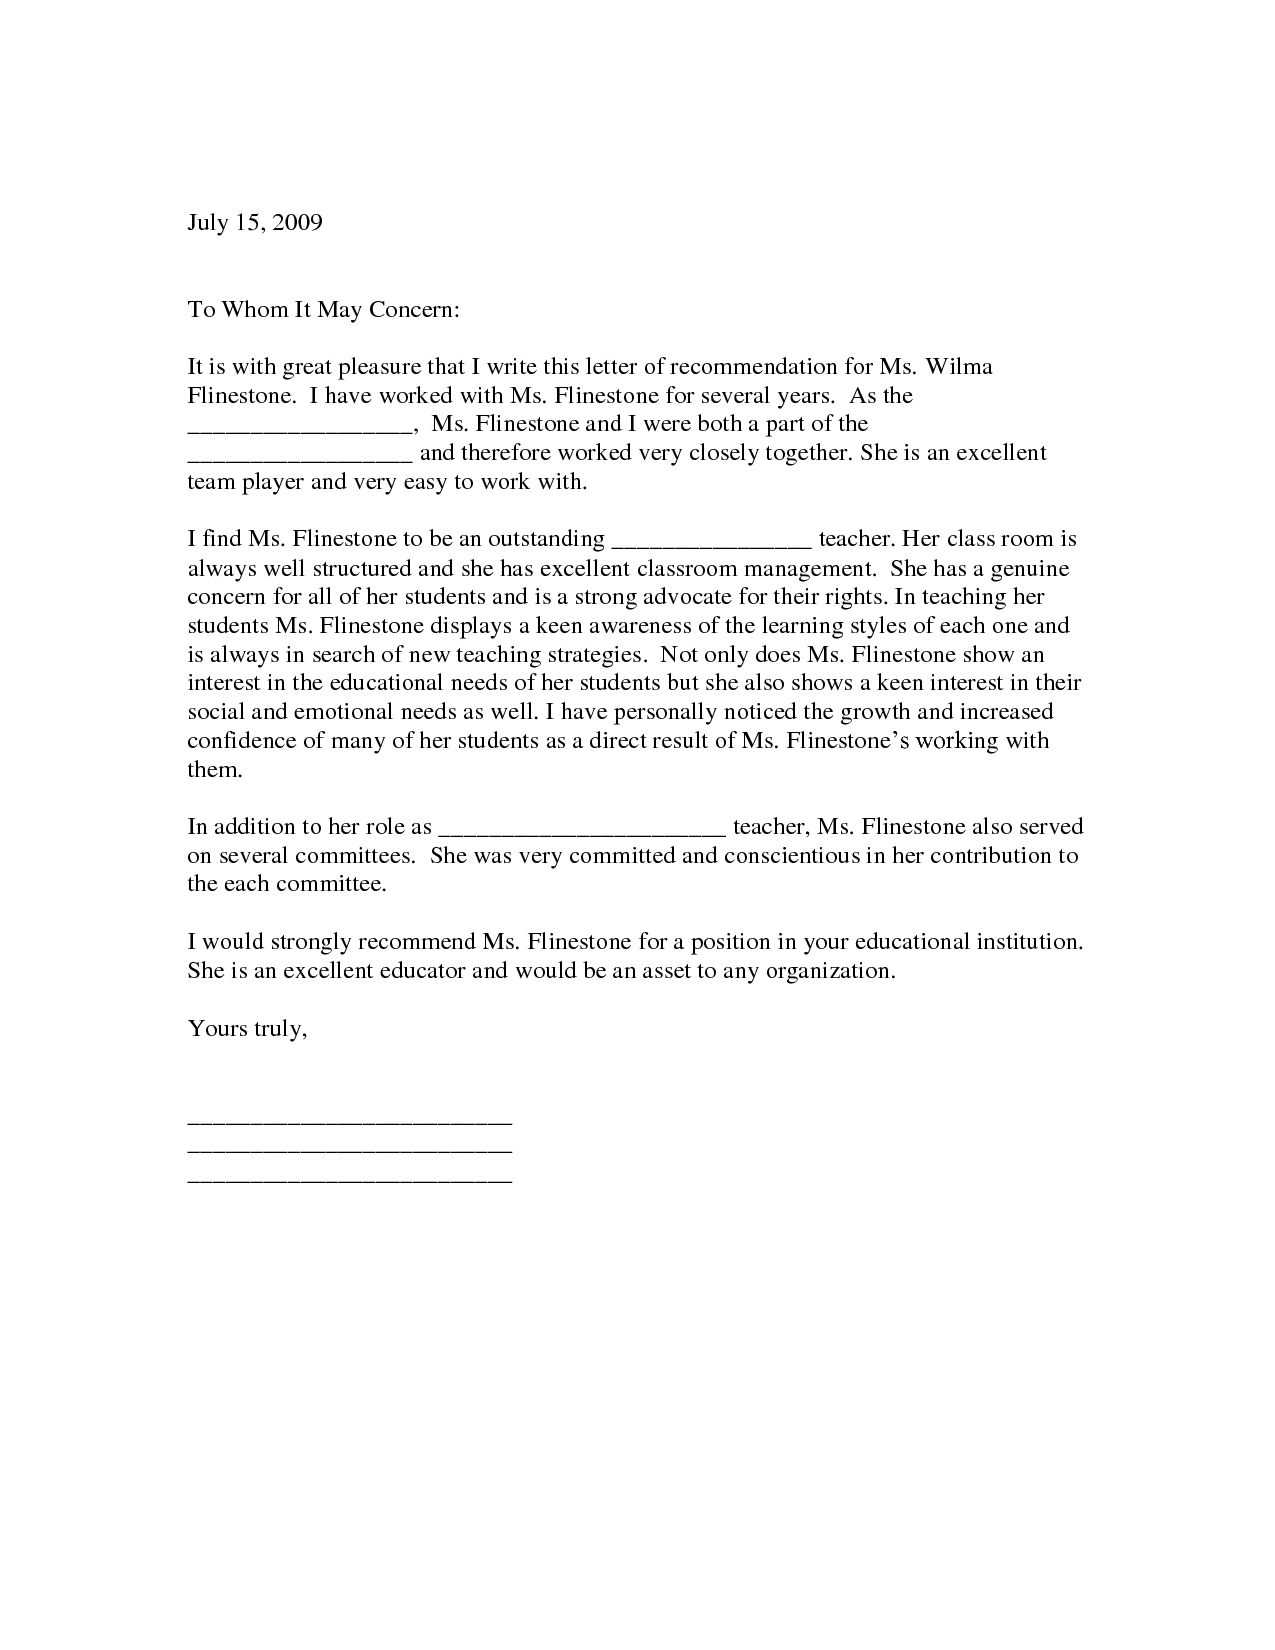 Letter of Recommendation for Teaching Position letter of recommendation for teacher teacher letter of recommendation 2016